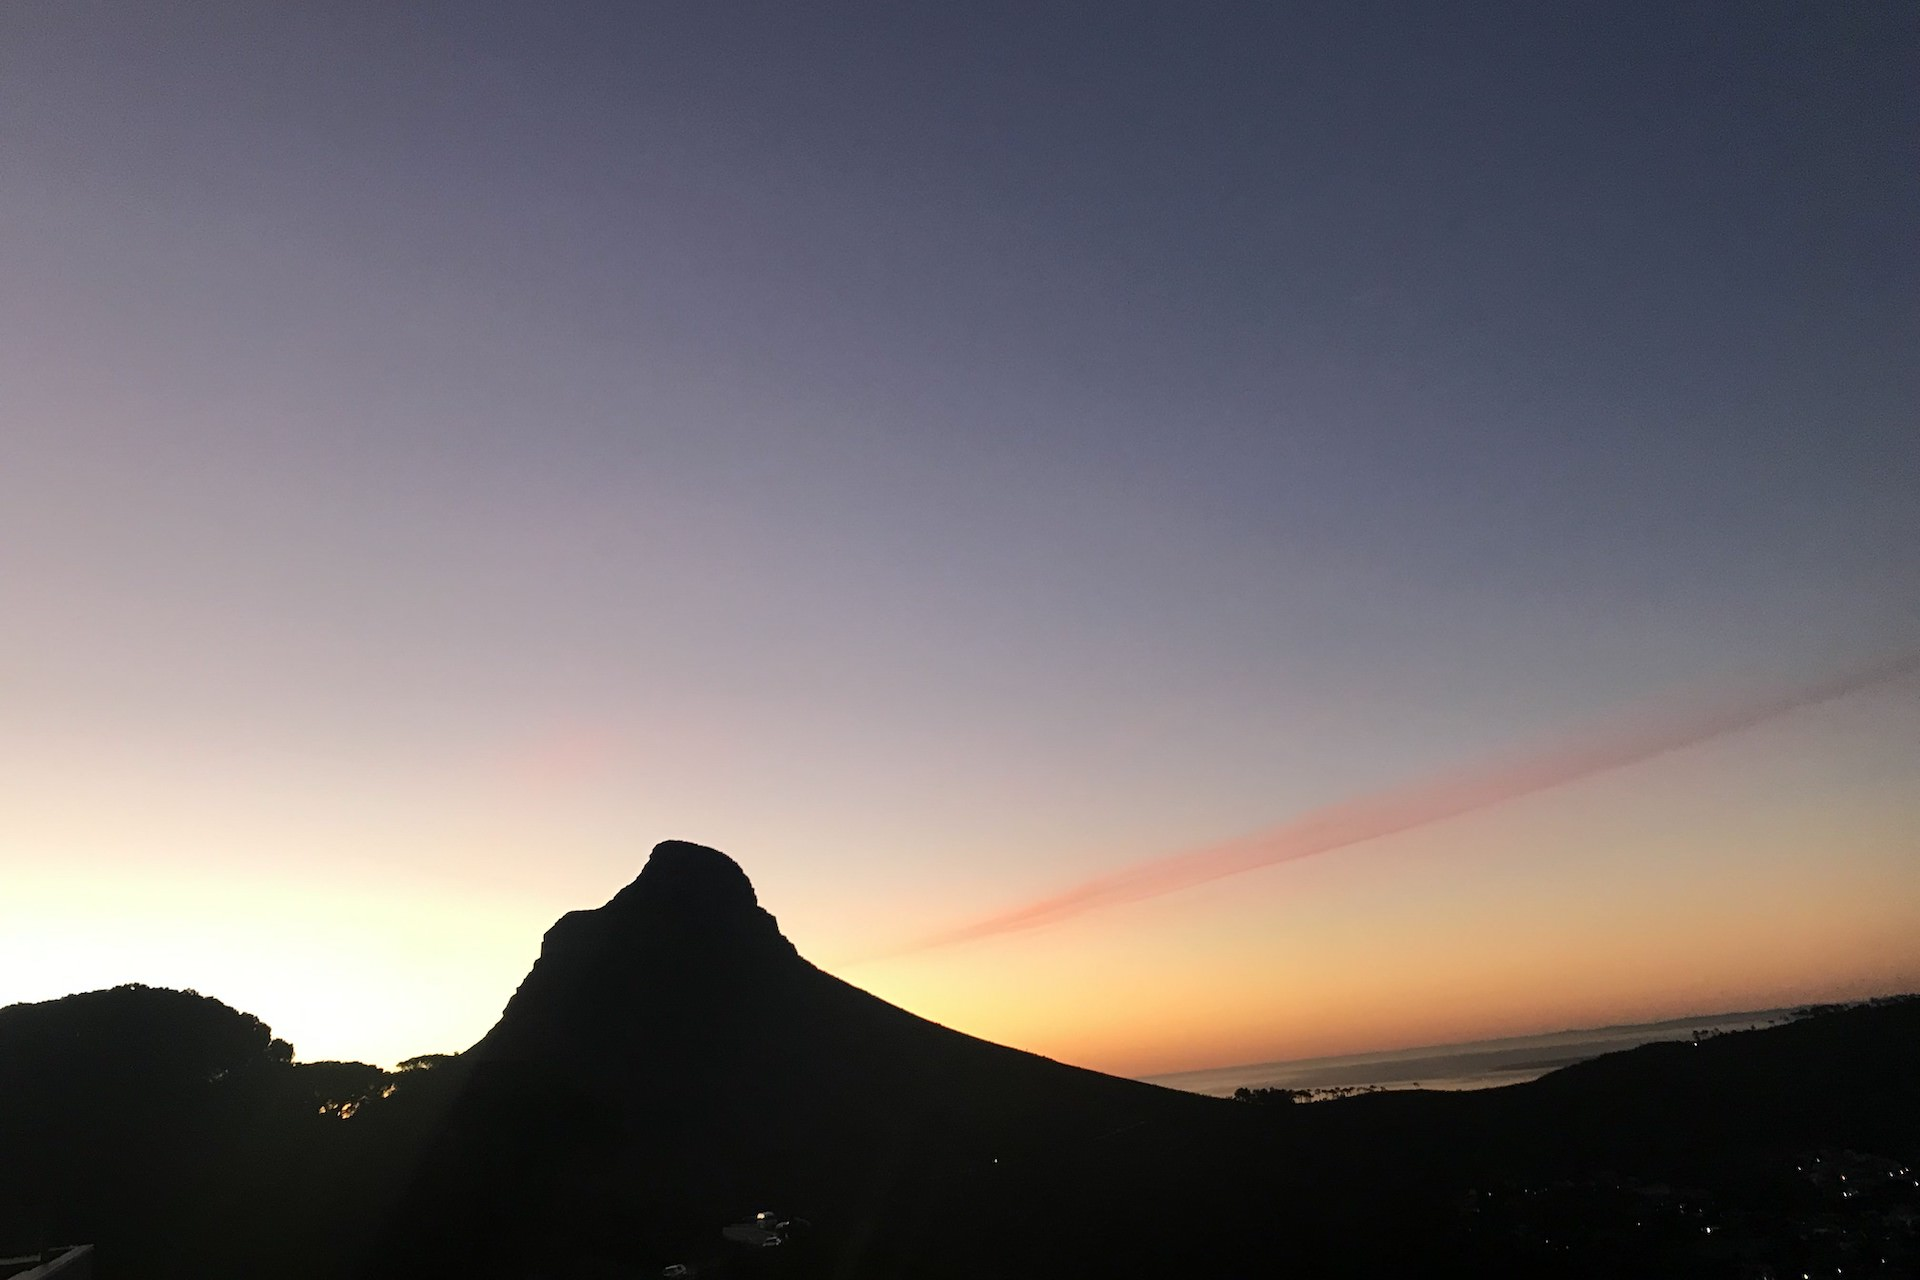 sunset from table mountain